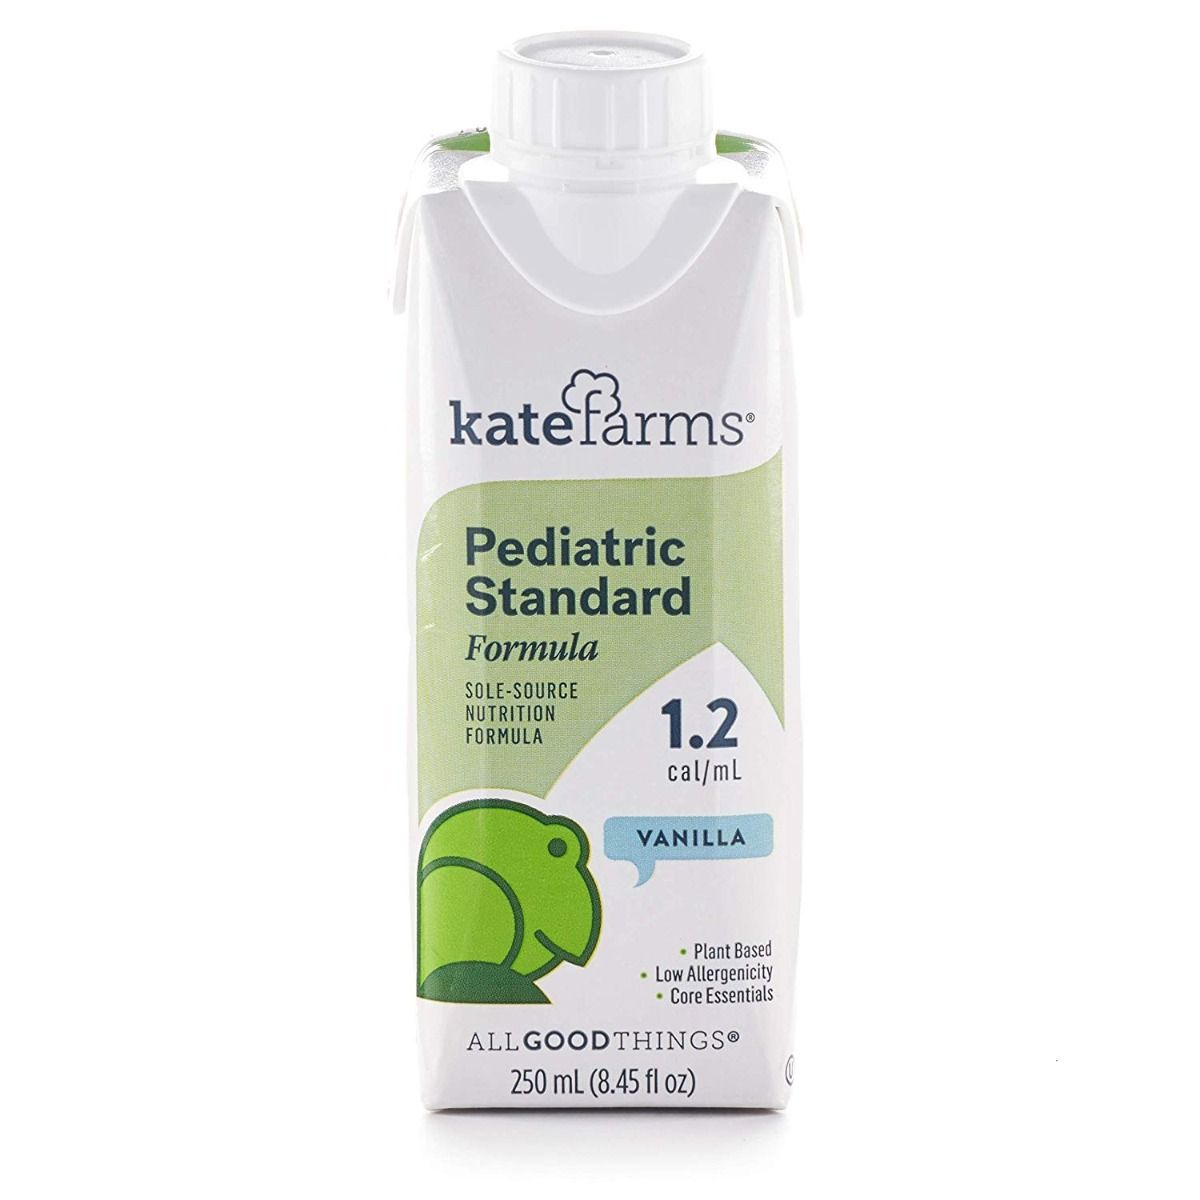 Nutrition Formula Kate Farms Pediatric Standard 1 2 Vanilla